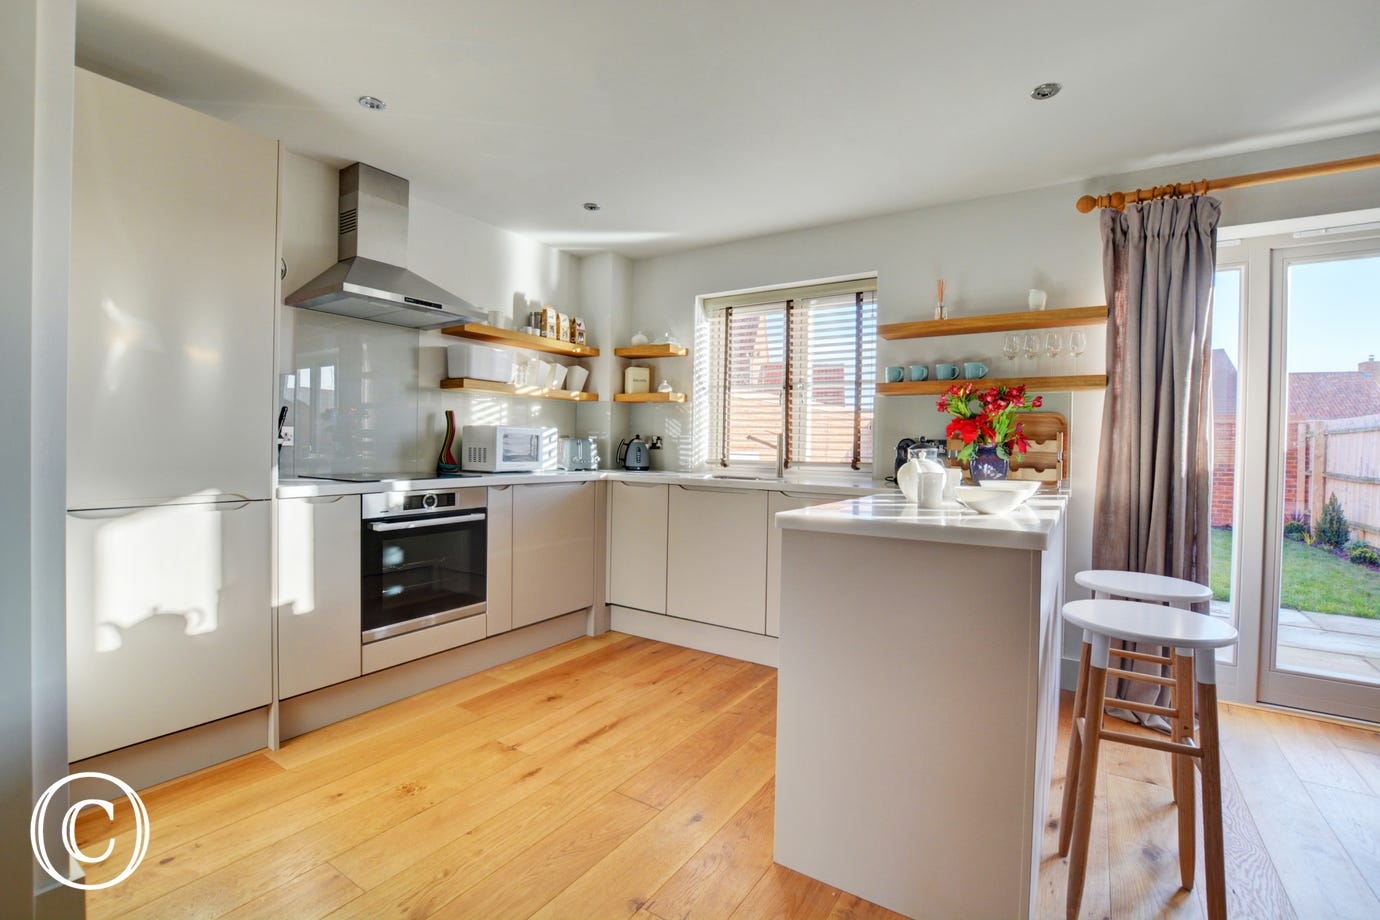 Fitted and equipped kitchen - perfect for cooking up a morning breakfast to fill you up in readiness for a full days exploring!